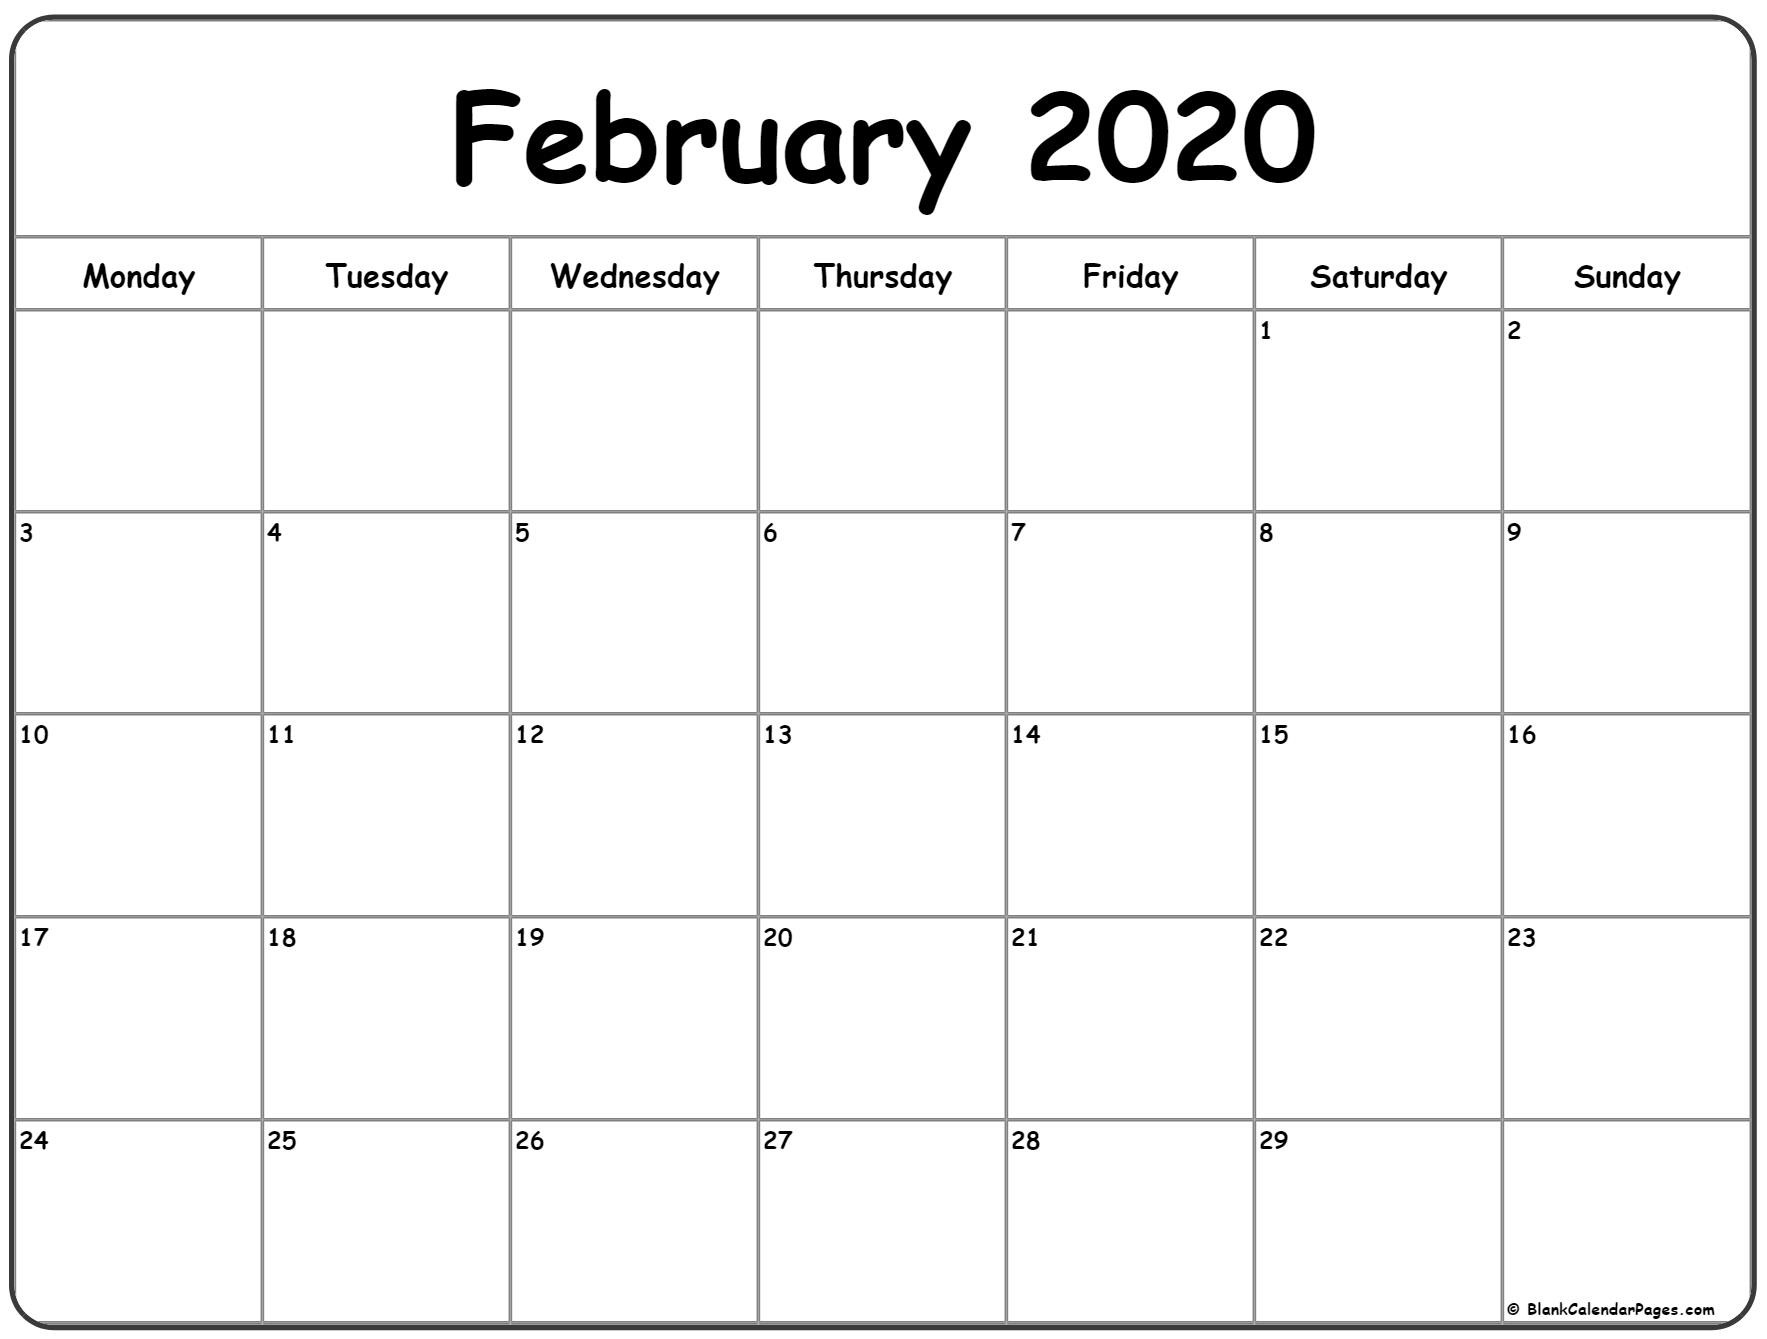 February 2020 Monday Calendar | Monday To Sunday-Monday To Sunday Monthly Planners